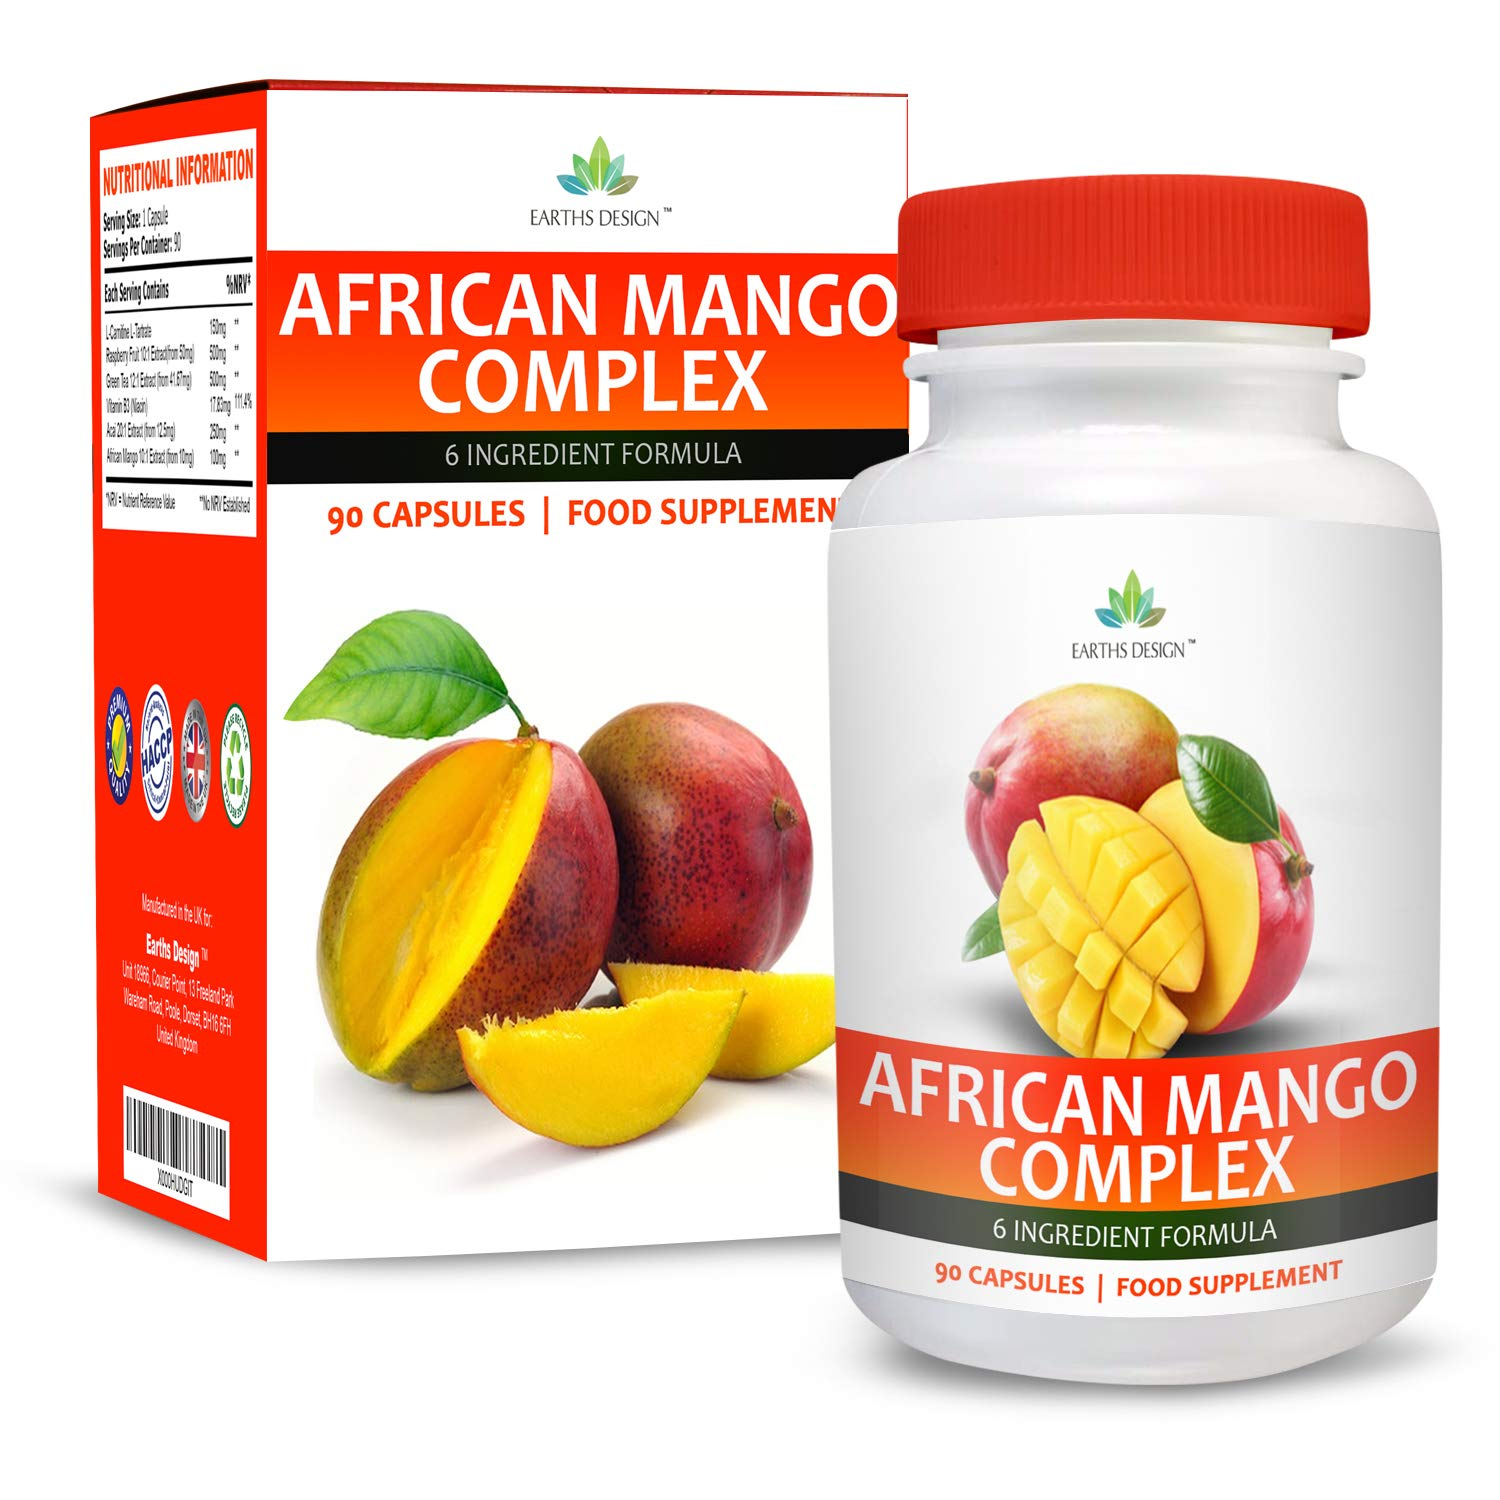 African Mango Complex - 1000mg Extract With Raspberry Ketones, Green Coffee Bean, Capsicum & Glucomannan - Maximum Strength Supplement for Men & Women - Suitable for Vegetarians - 90 Capsules (3 Month Supply) by Earths Design